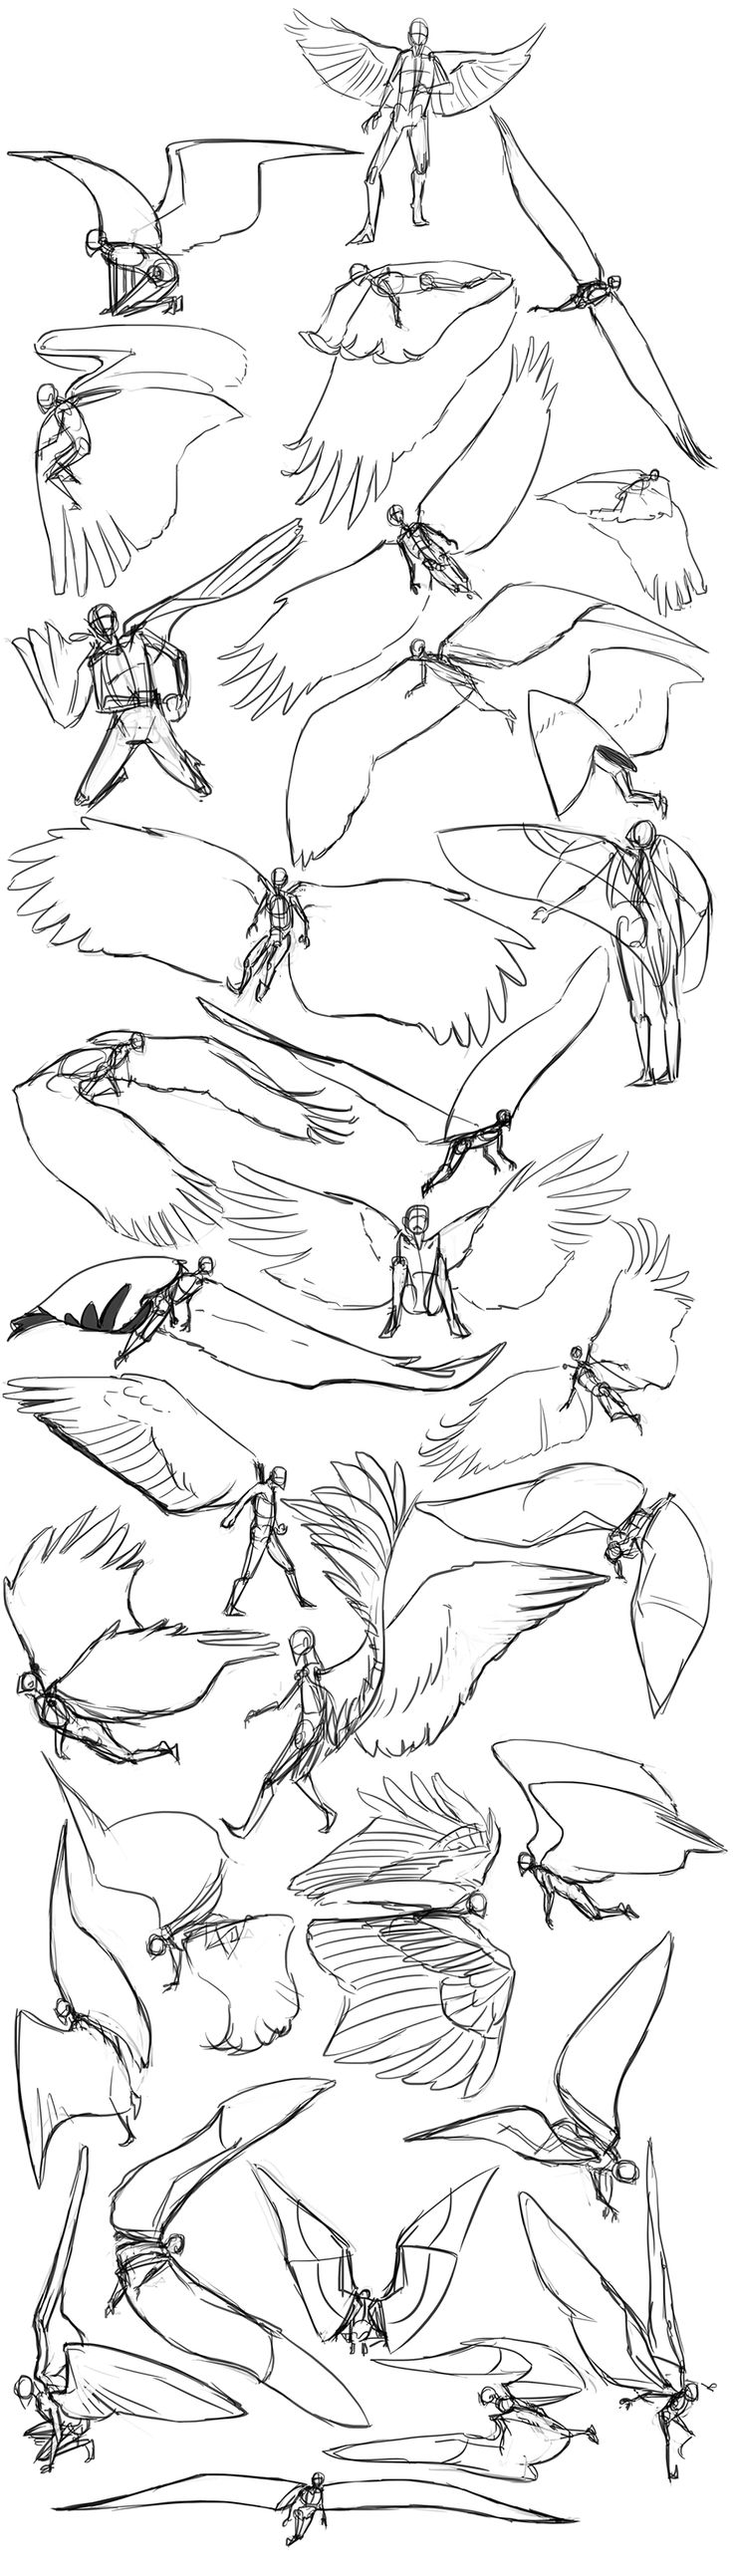 angel wings sketchdump by squidlifecrisis.deviantart.com on @deviantART